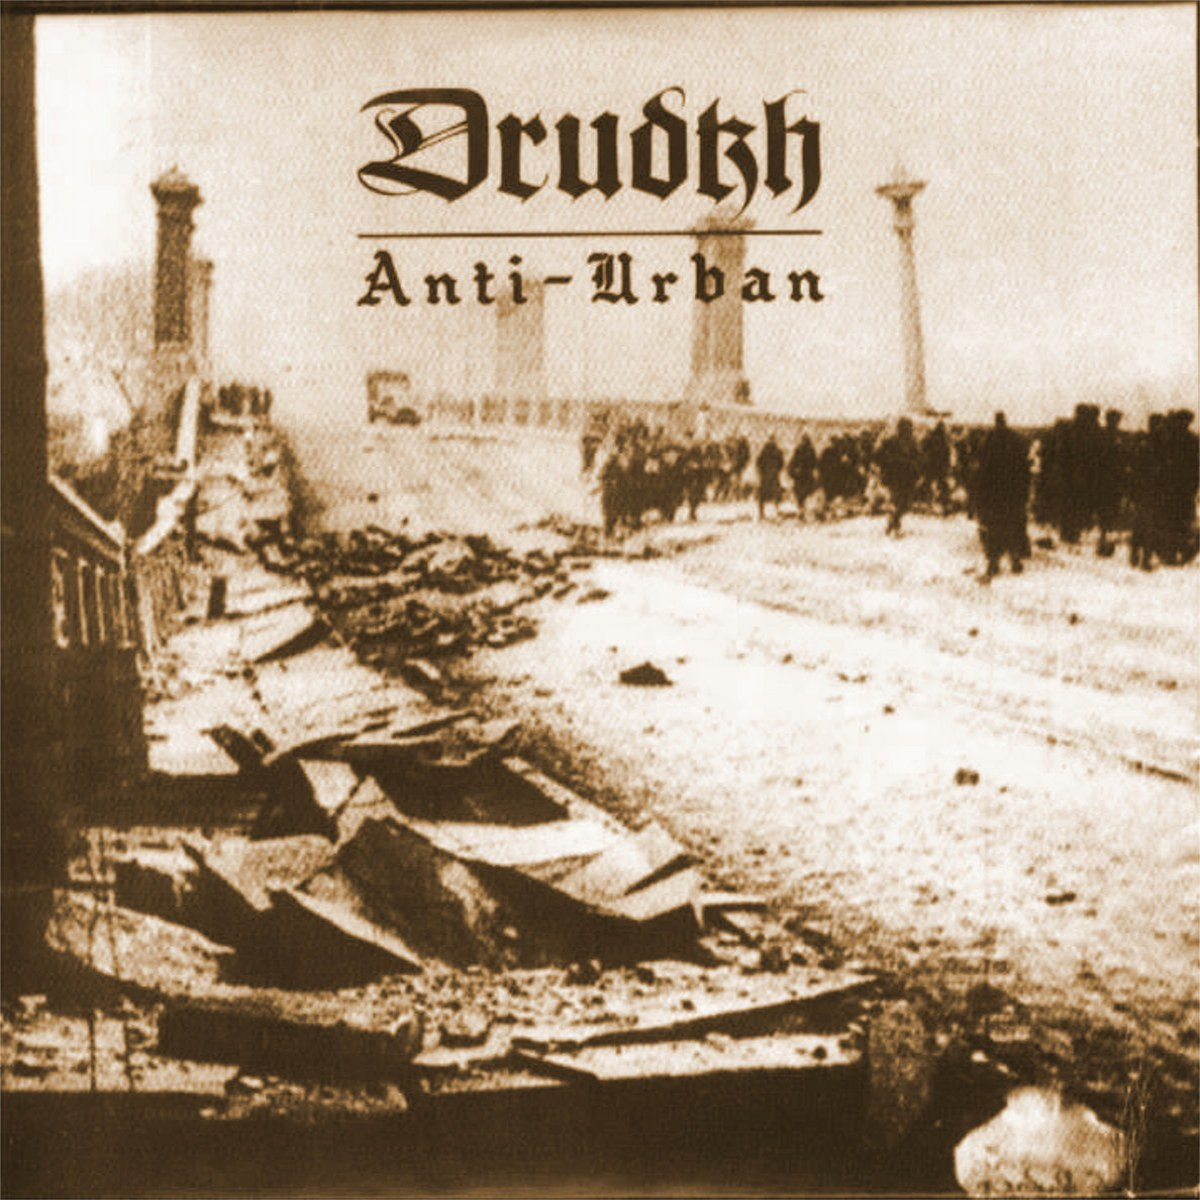 Review for Drudkh - Anti-Urban